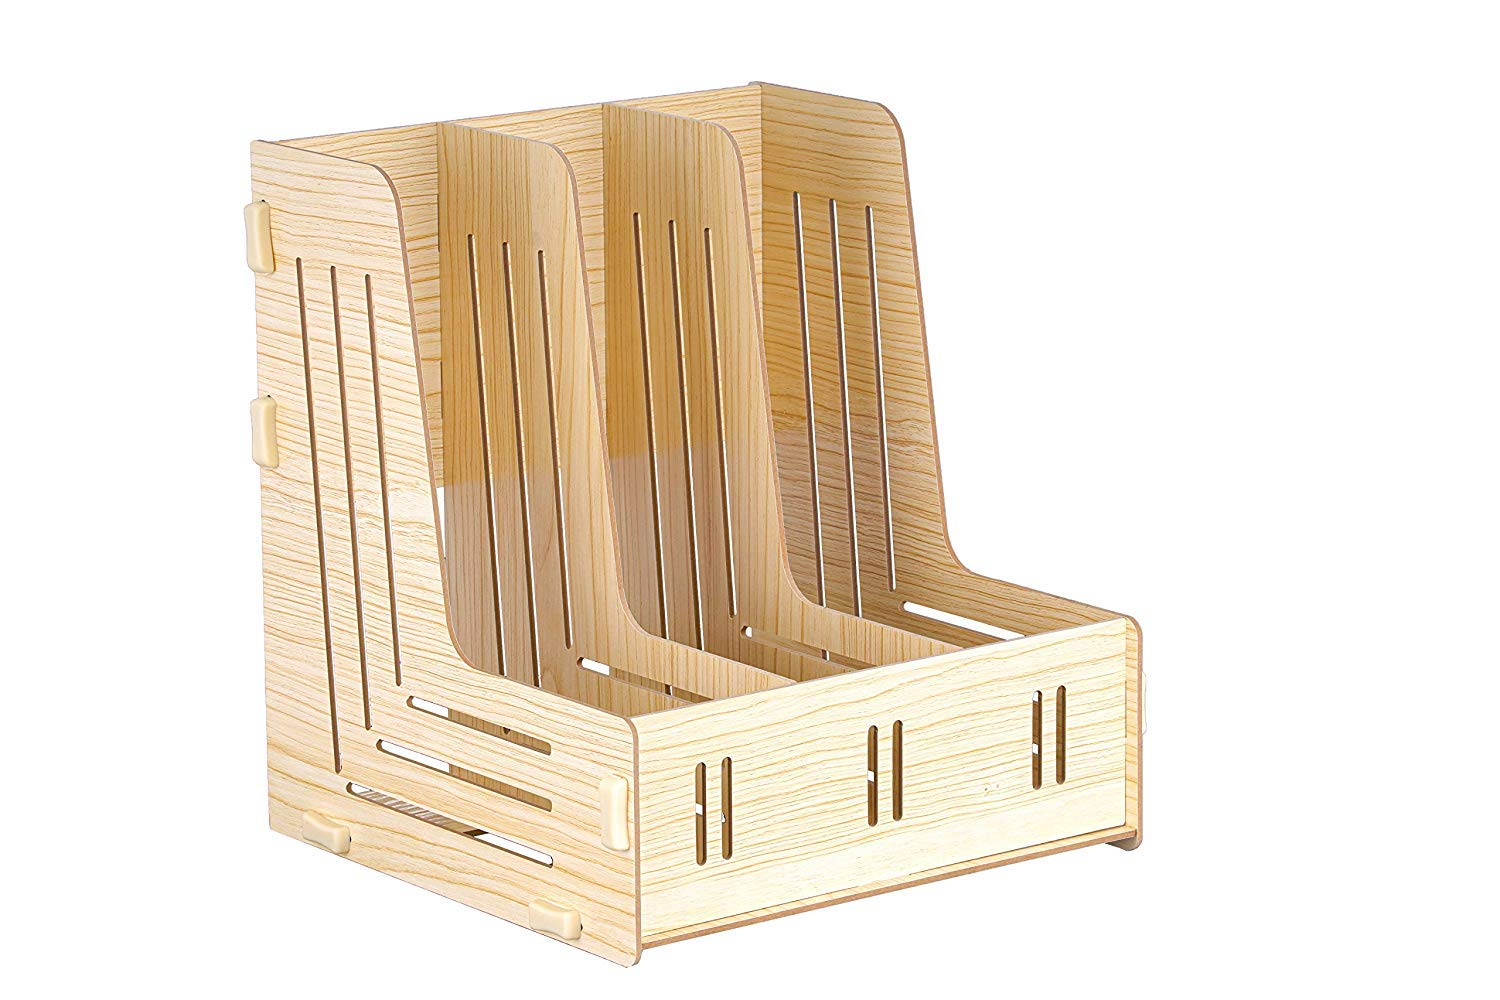 Rozli wooden Magazine File Holder Organizer Multi Trays Papers Documents Sorter Shelf Letter Tray ILE Tray